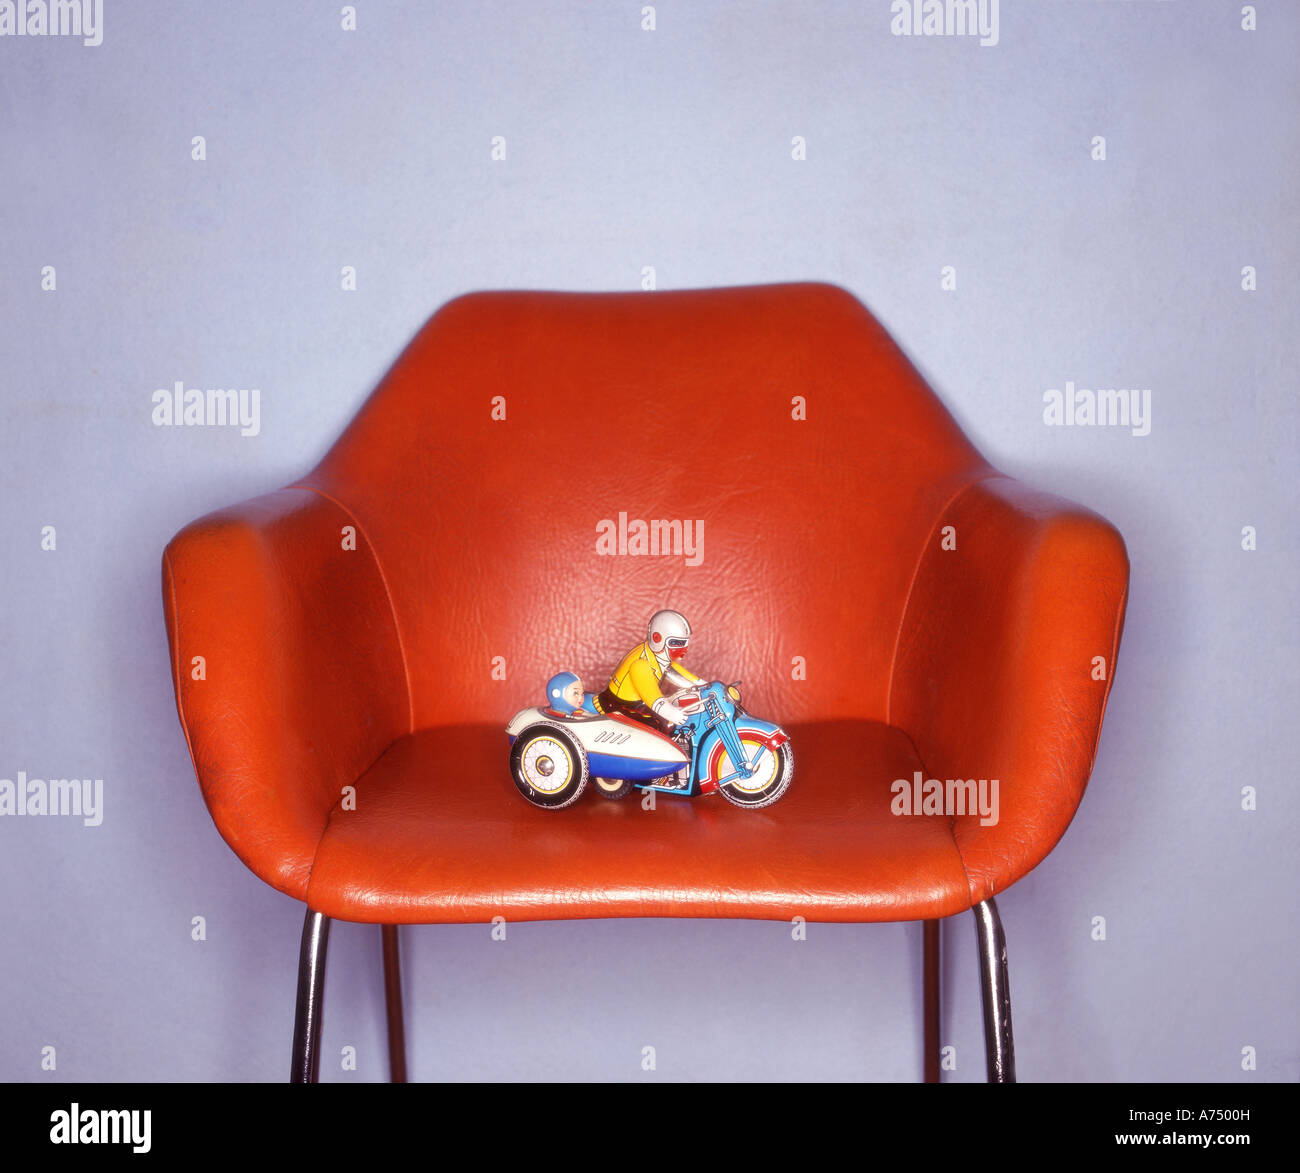 retro toy on retro chair lit by ringflash - Stock Image